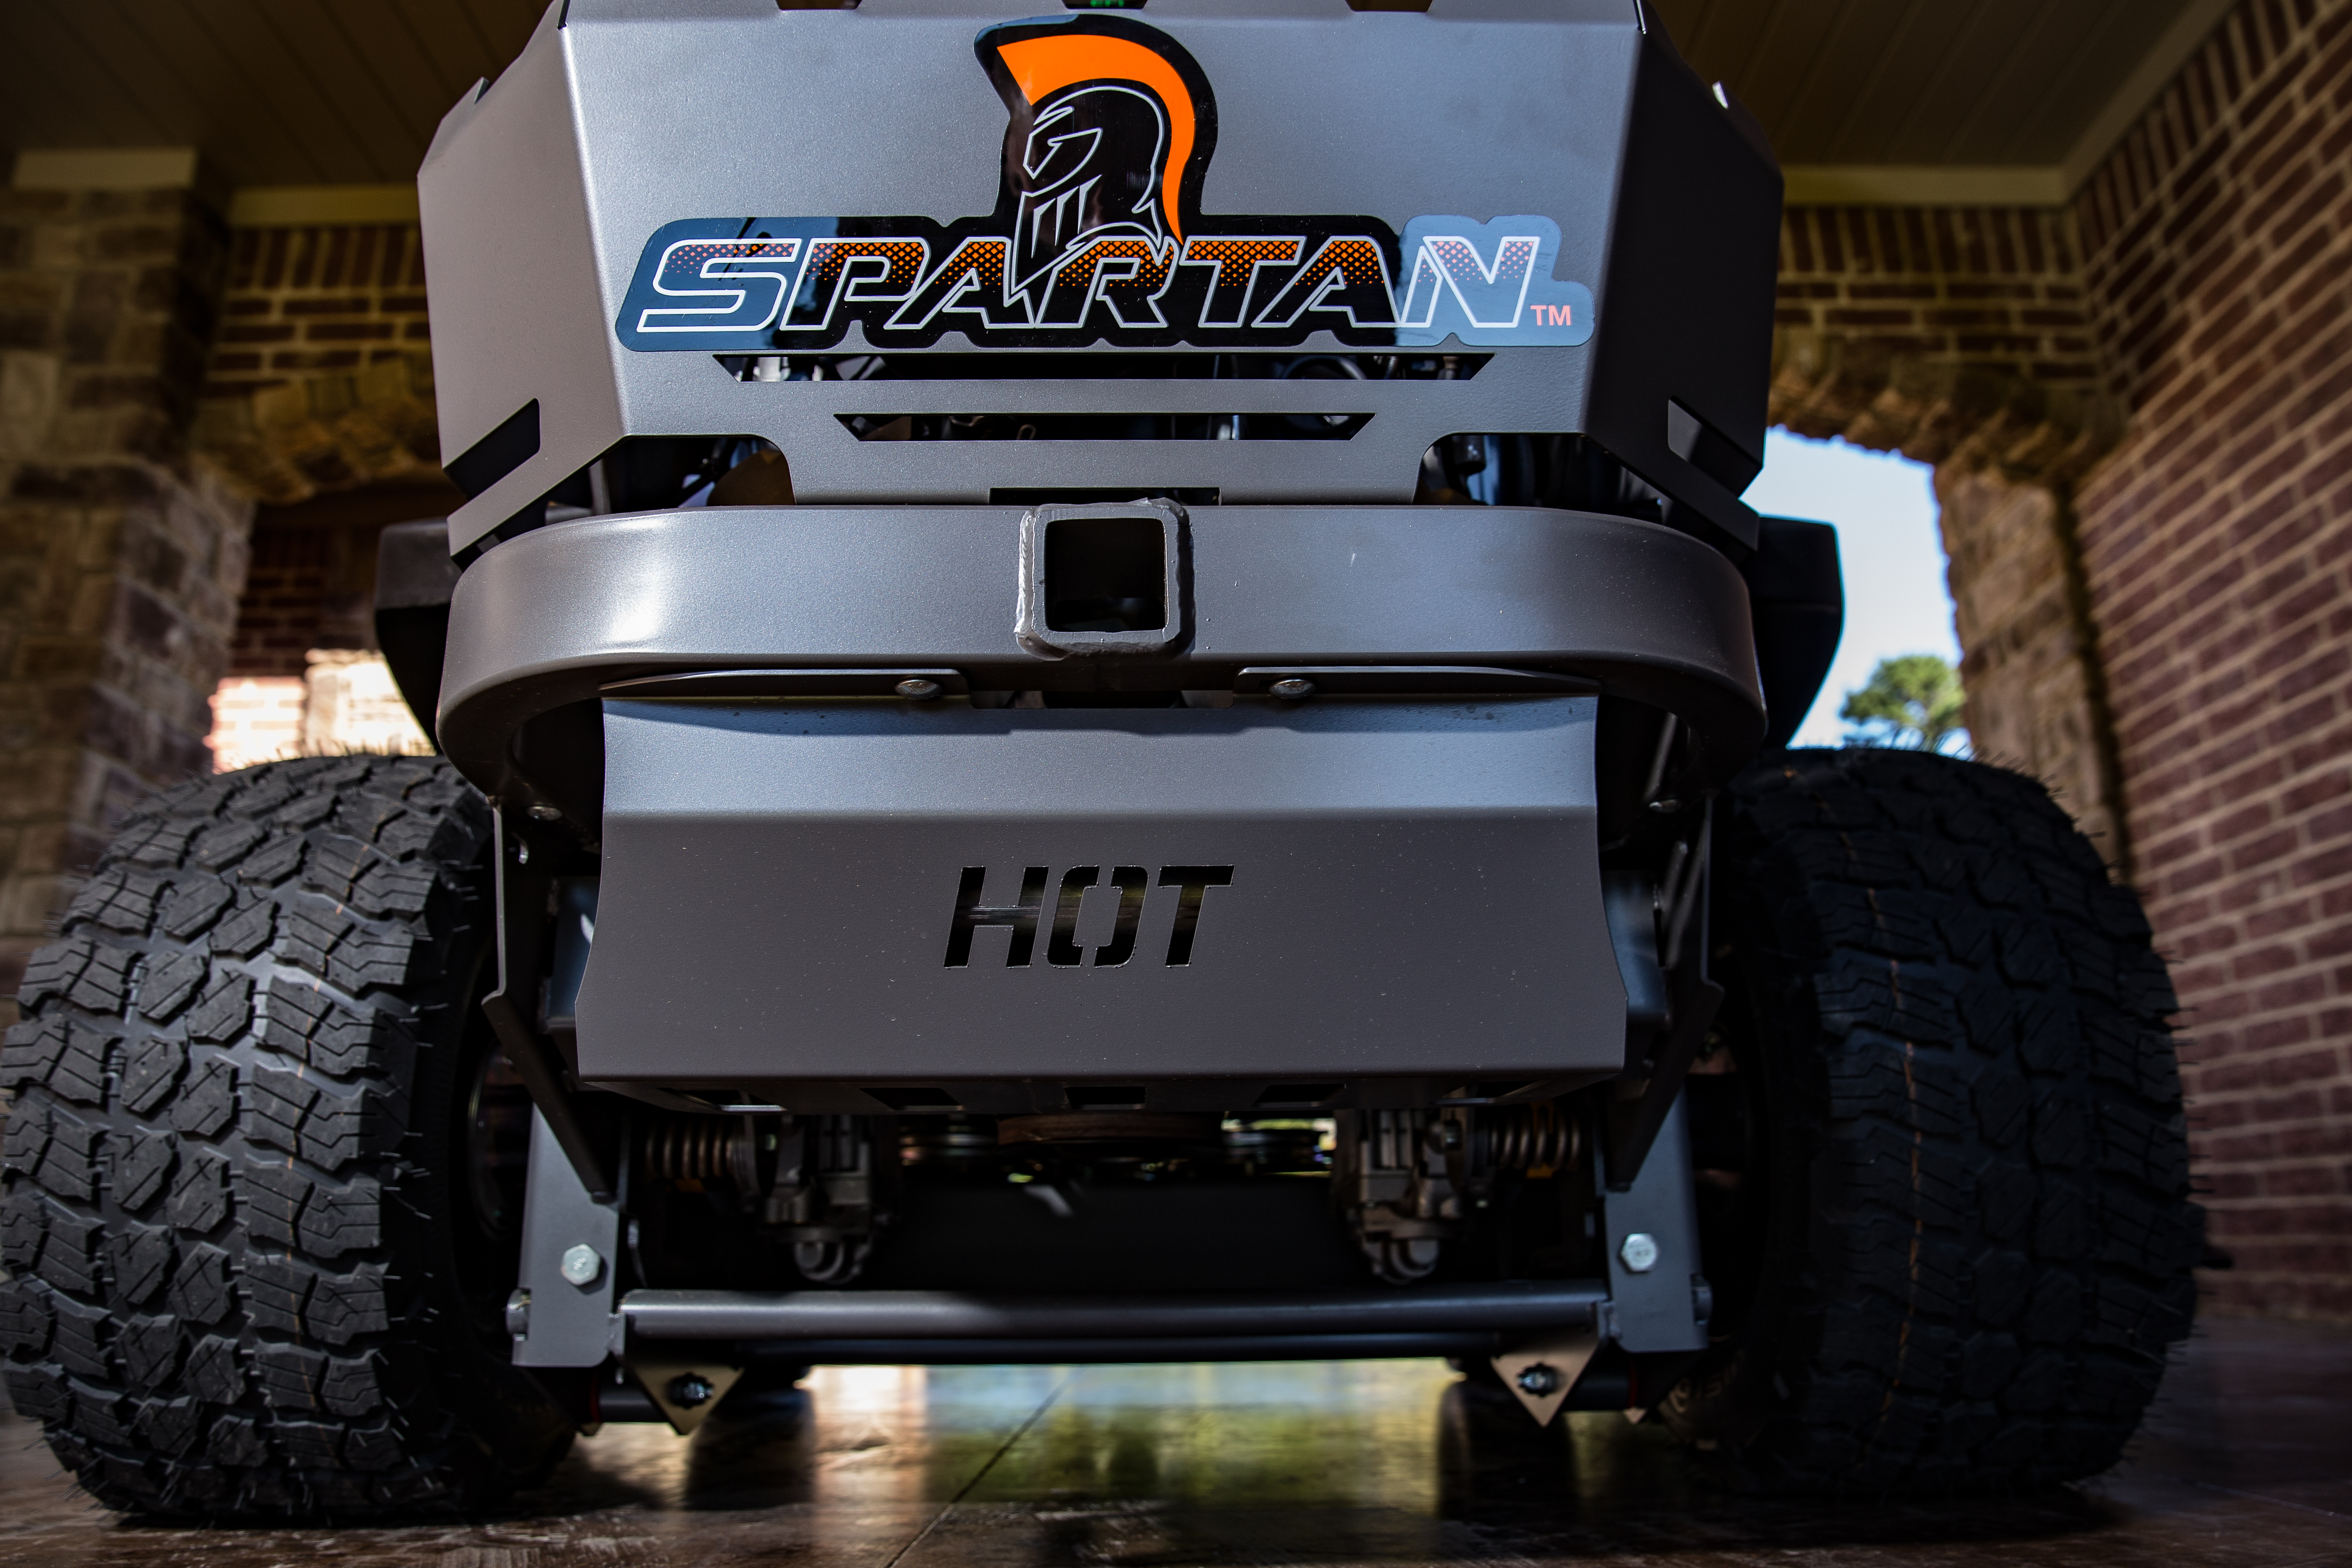 Spartan has commercial zero turn mowers.